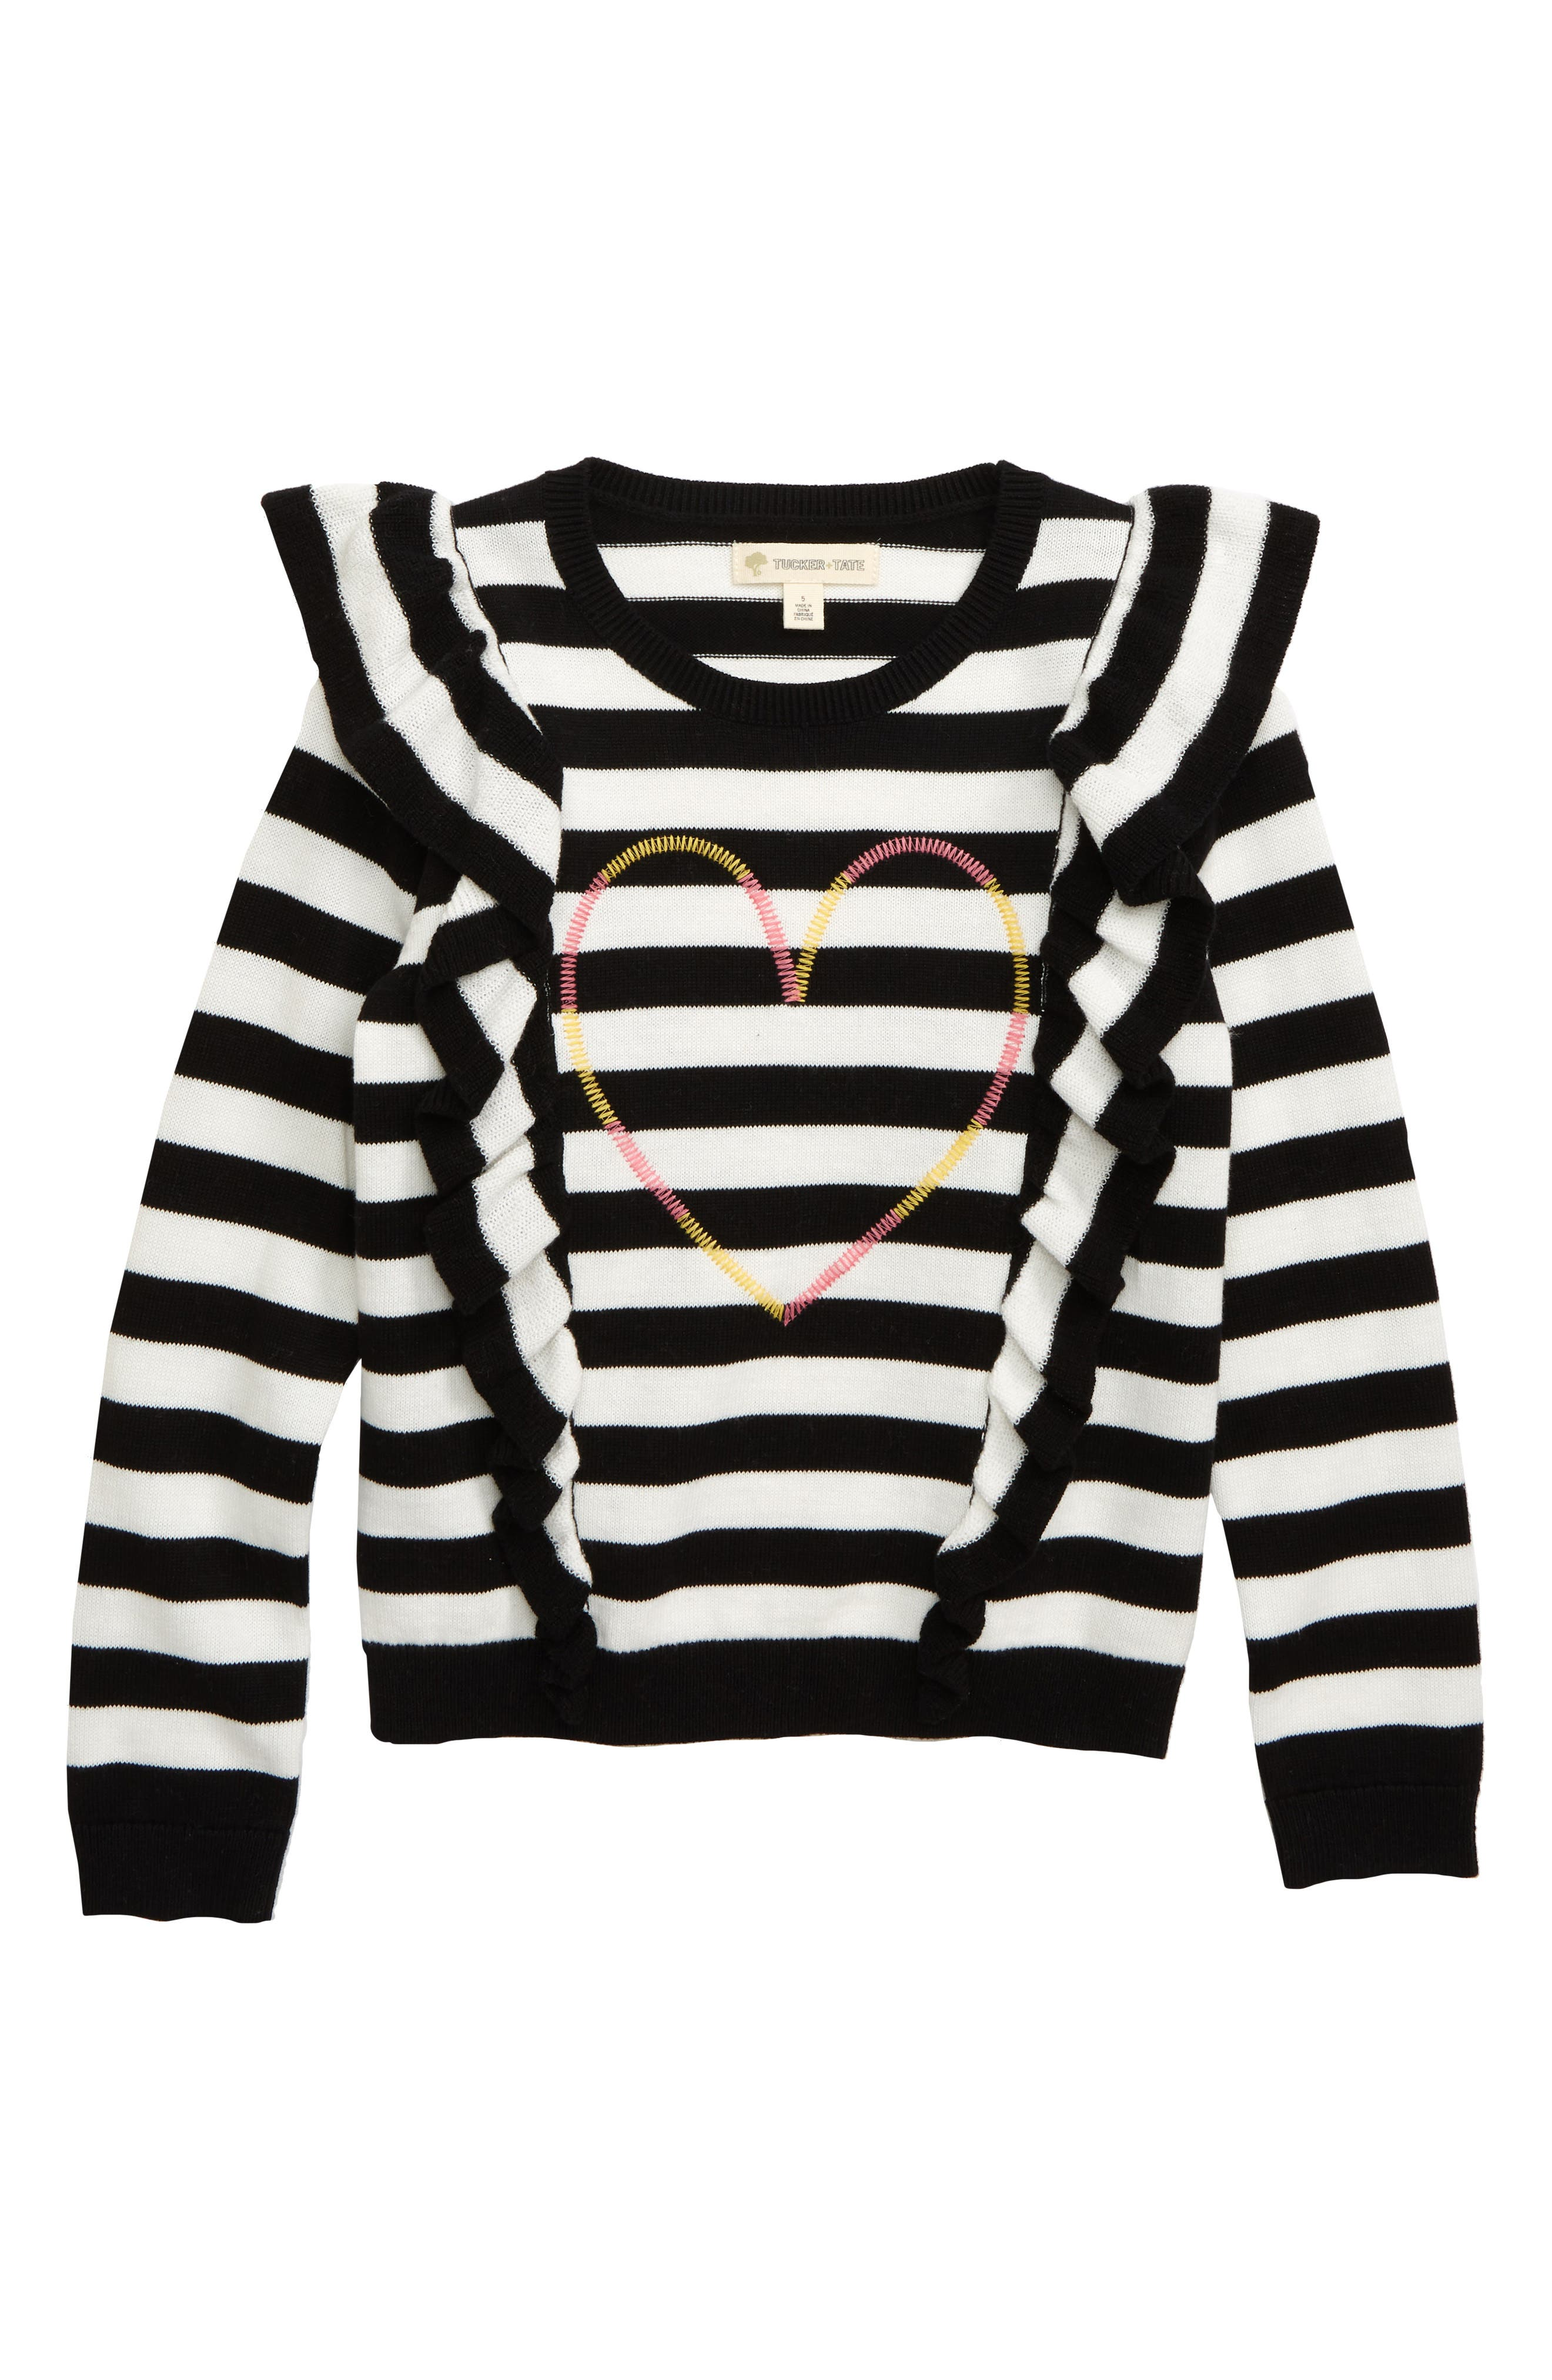 Toddler Girls Tucker  Tate Stripe Embroidered Heart Ruffle Sweater Size 2T  Black